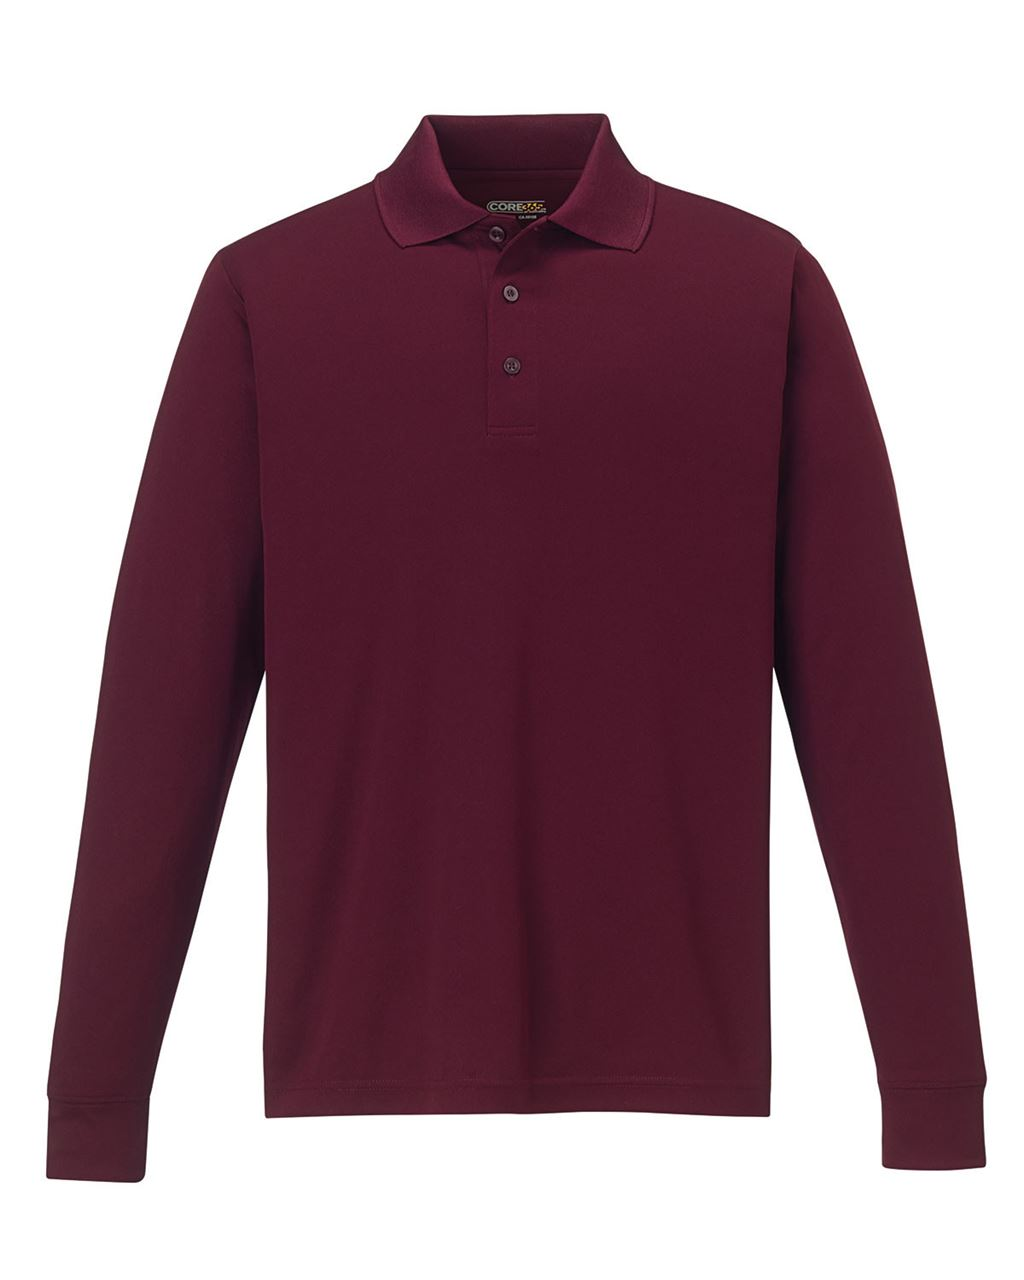 Picture of Core365 Men's Performance Long Sleeve Pique Polos